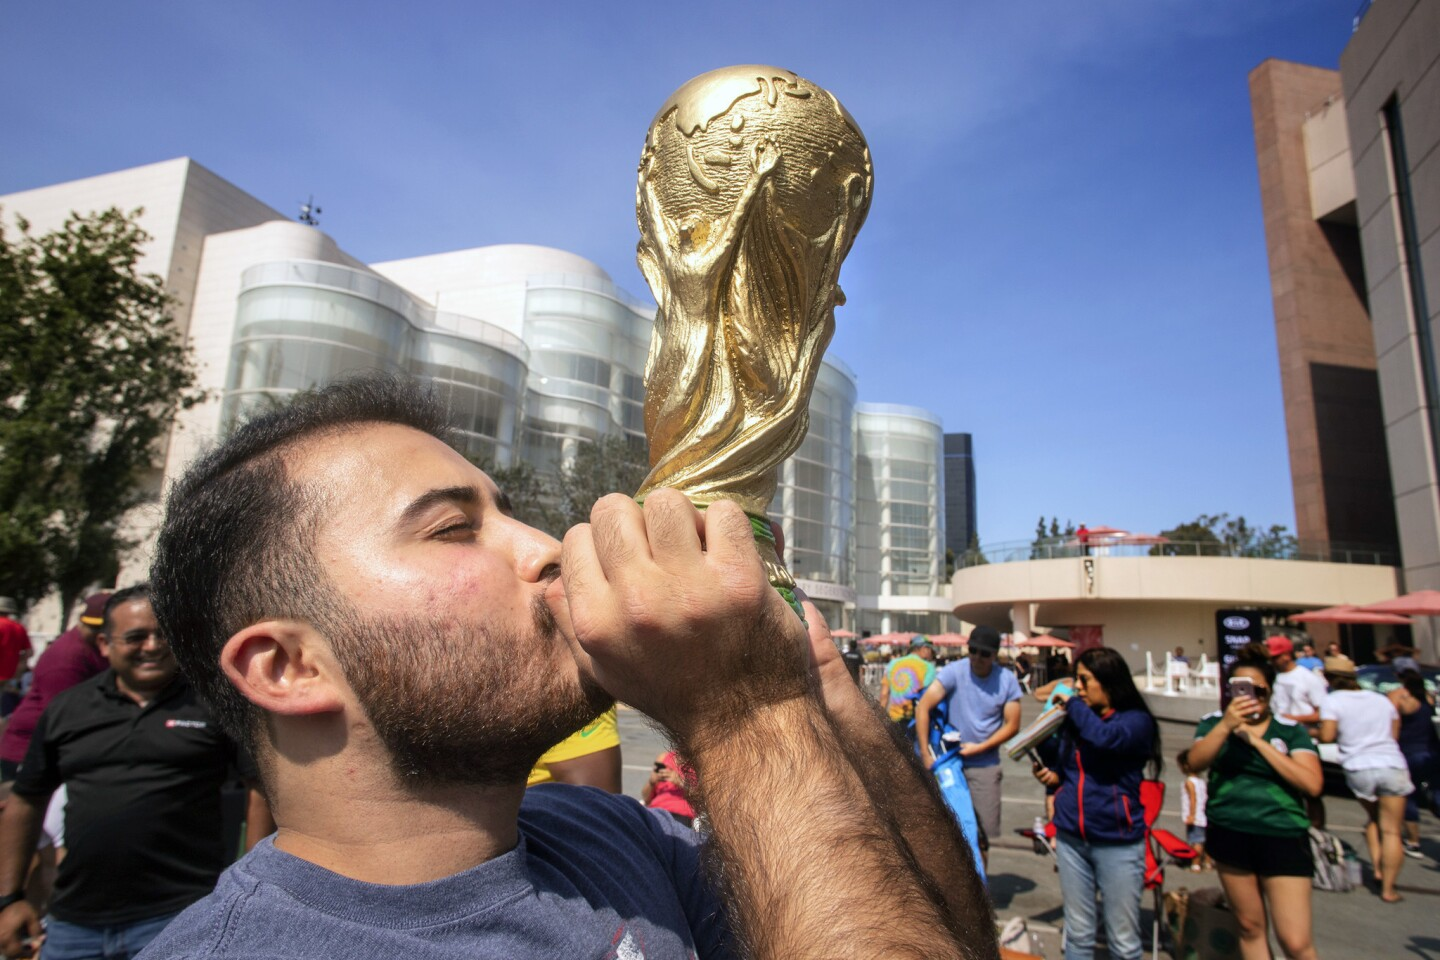 Photo Gallery: 2018 World Cup viewing in Costa Mesa